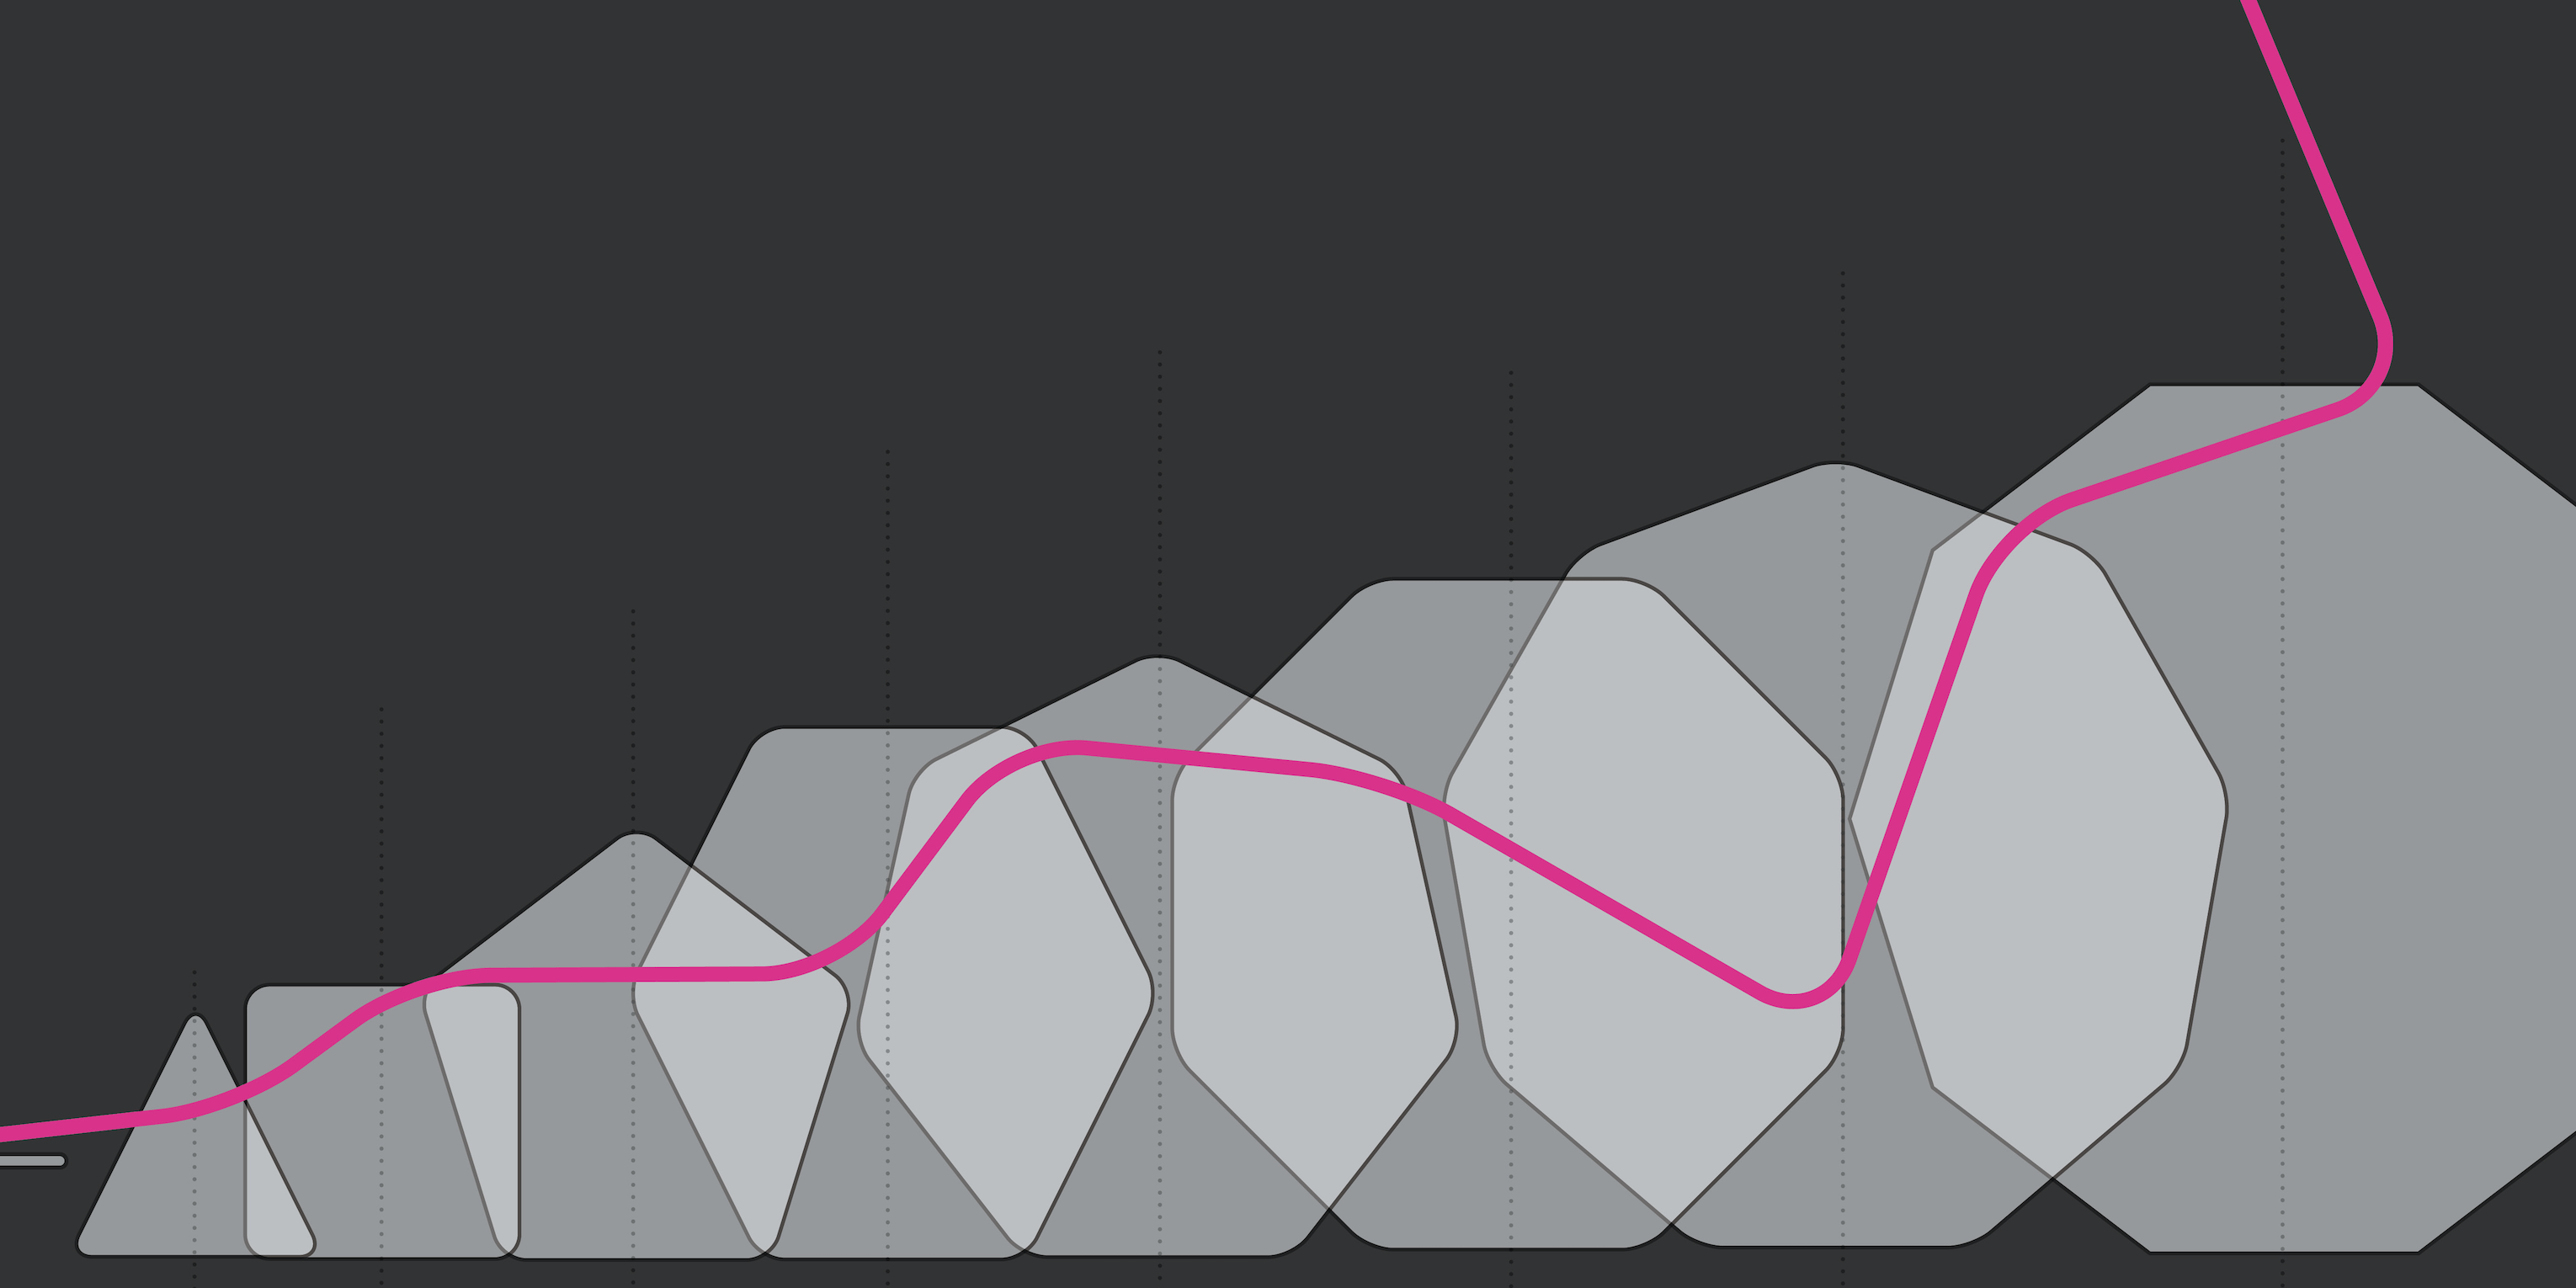 gradient grey octagon image with pink graph line